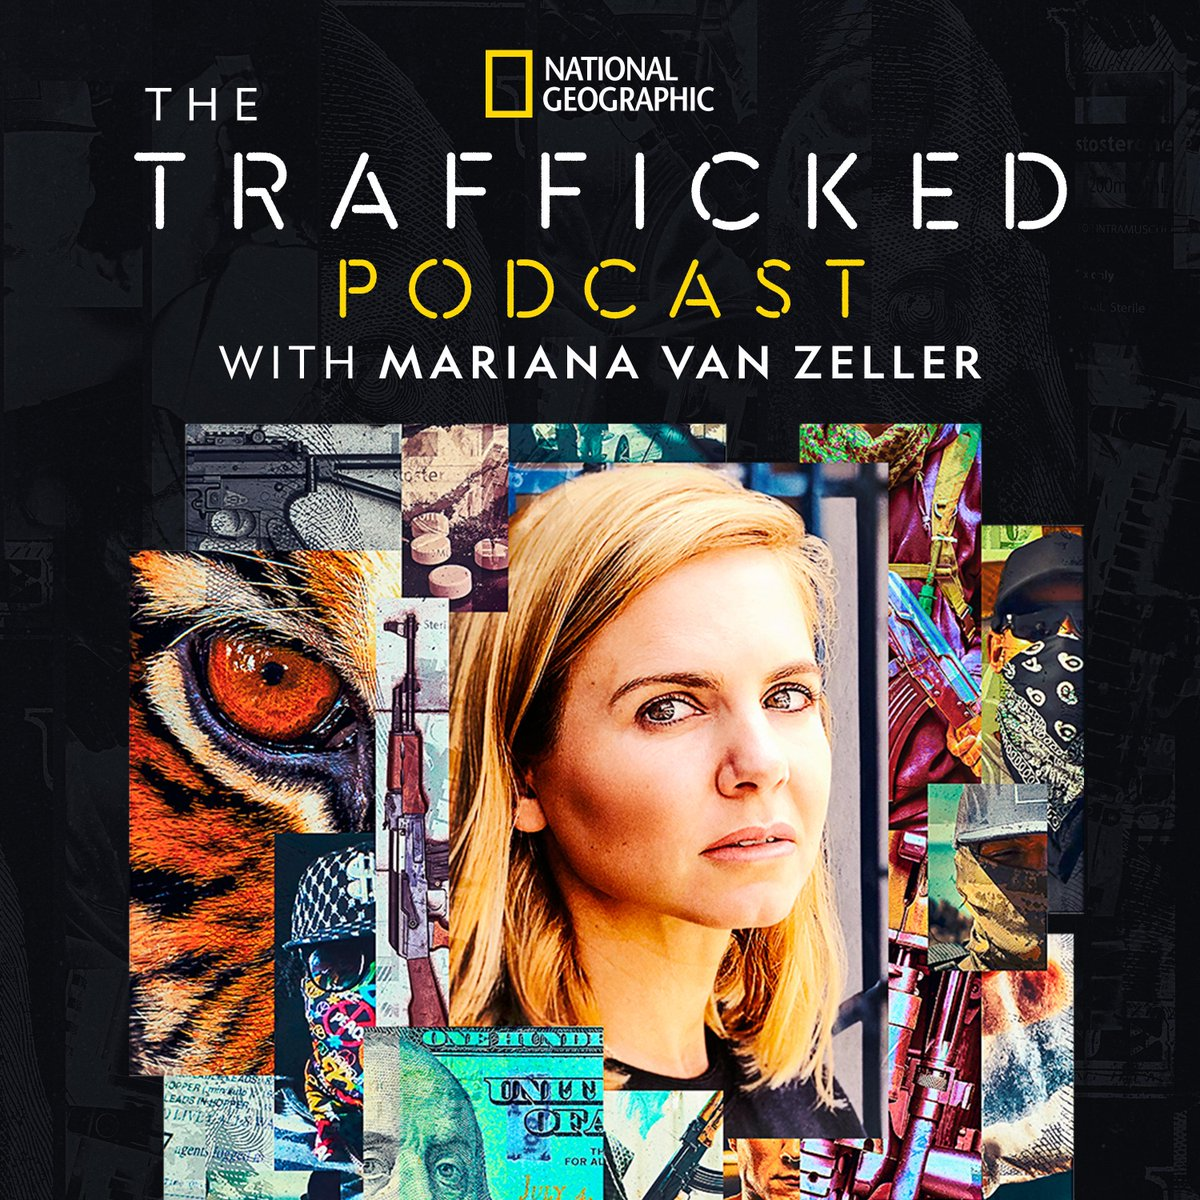 In Trafficked, our newest podcast series, journalist Mariana van Zeller asks former trafficking network operators how they were pulled to the dark side—and how it ended. https://t.co/CYTAyR3F6R https://t.co/z0oP0Et4ky